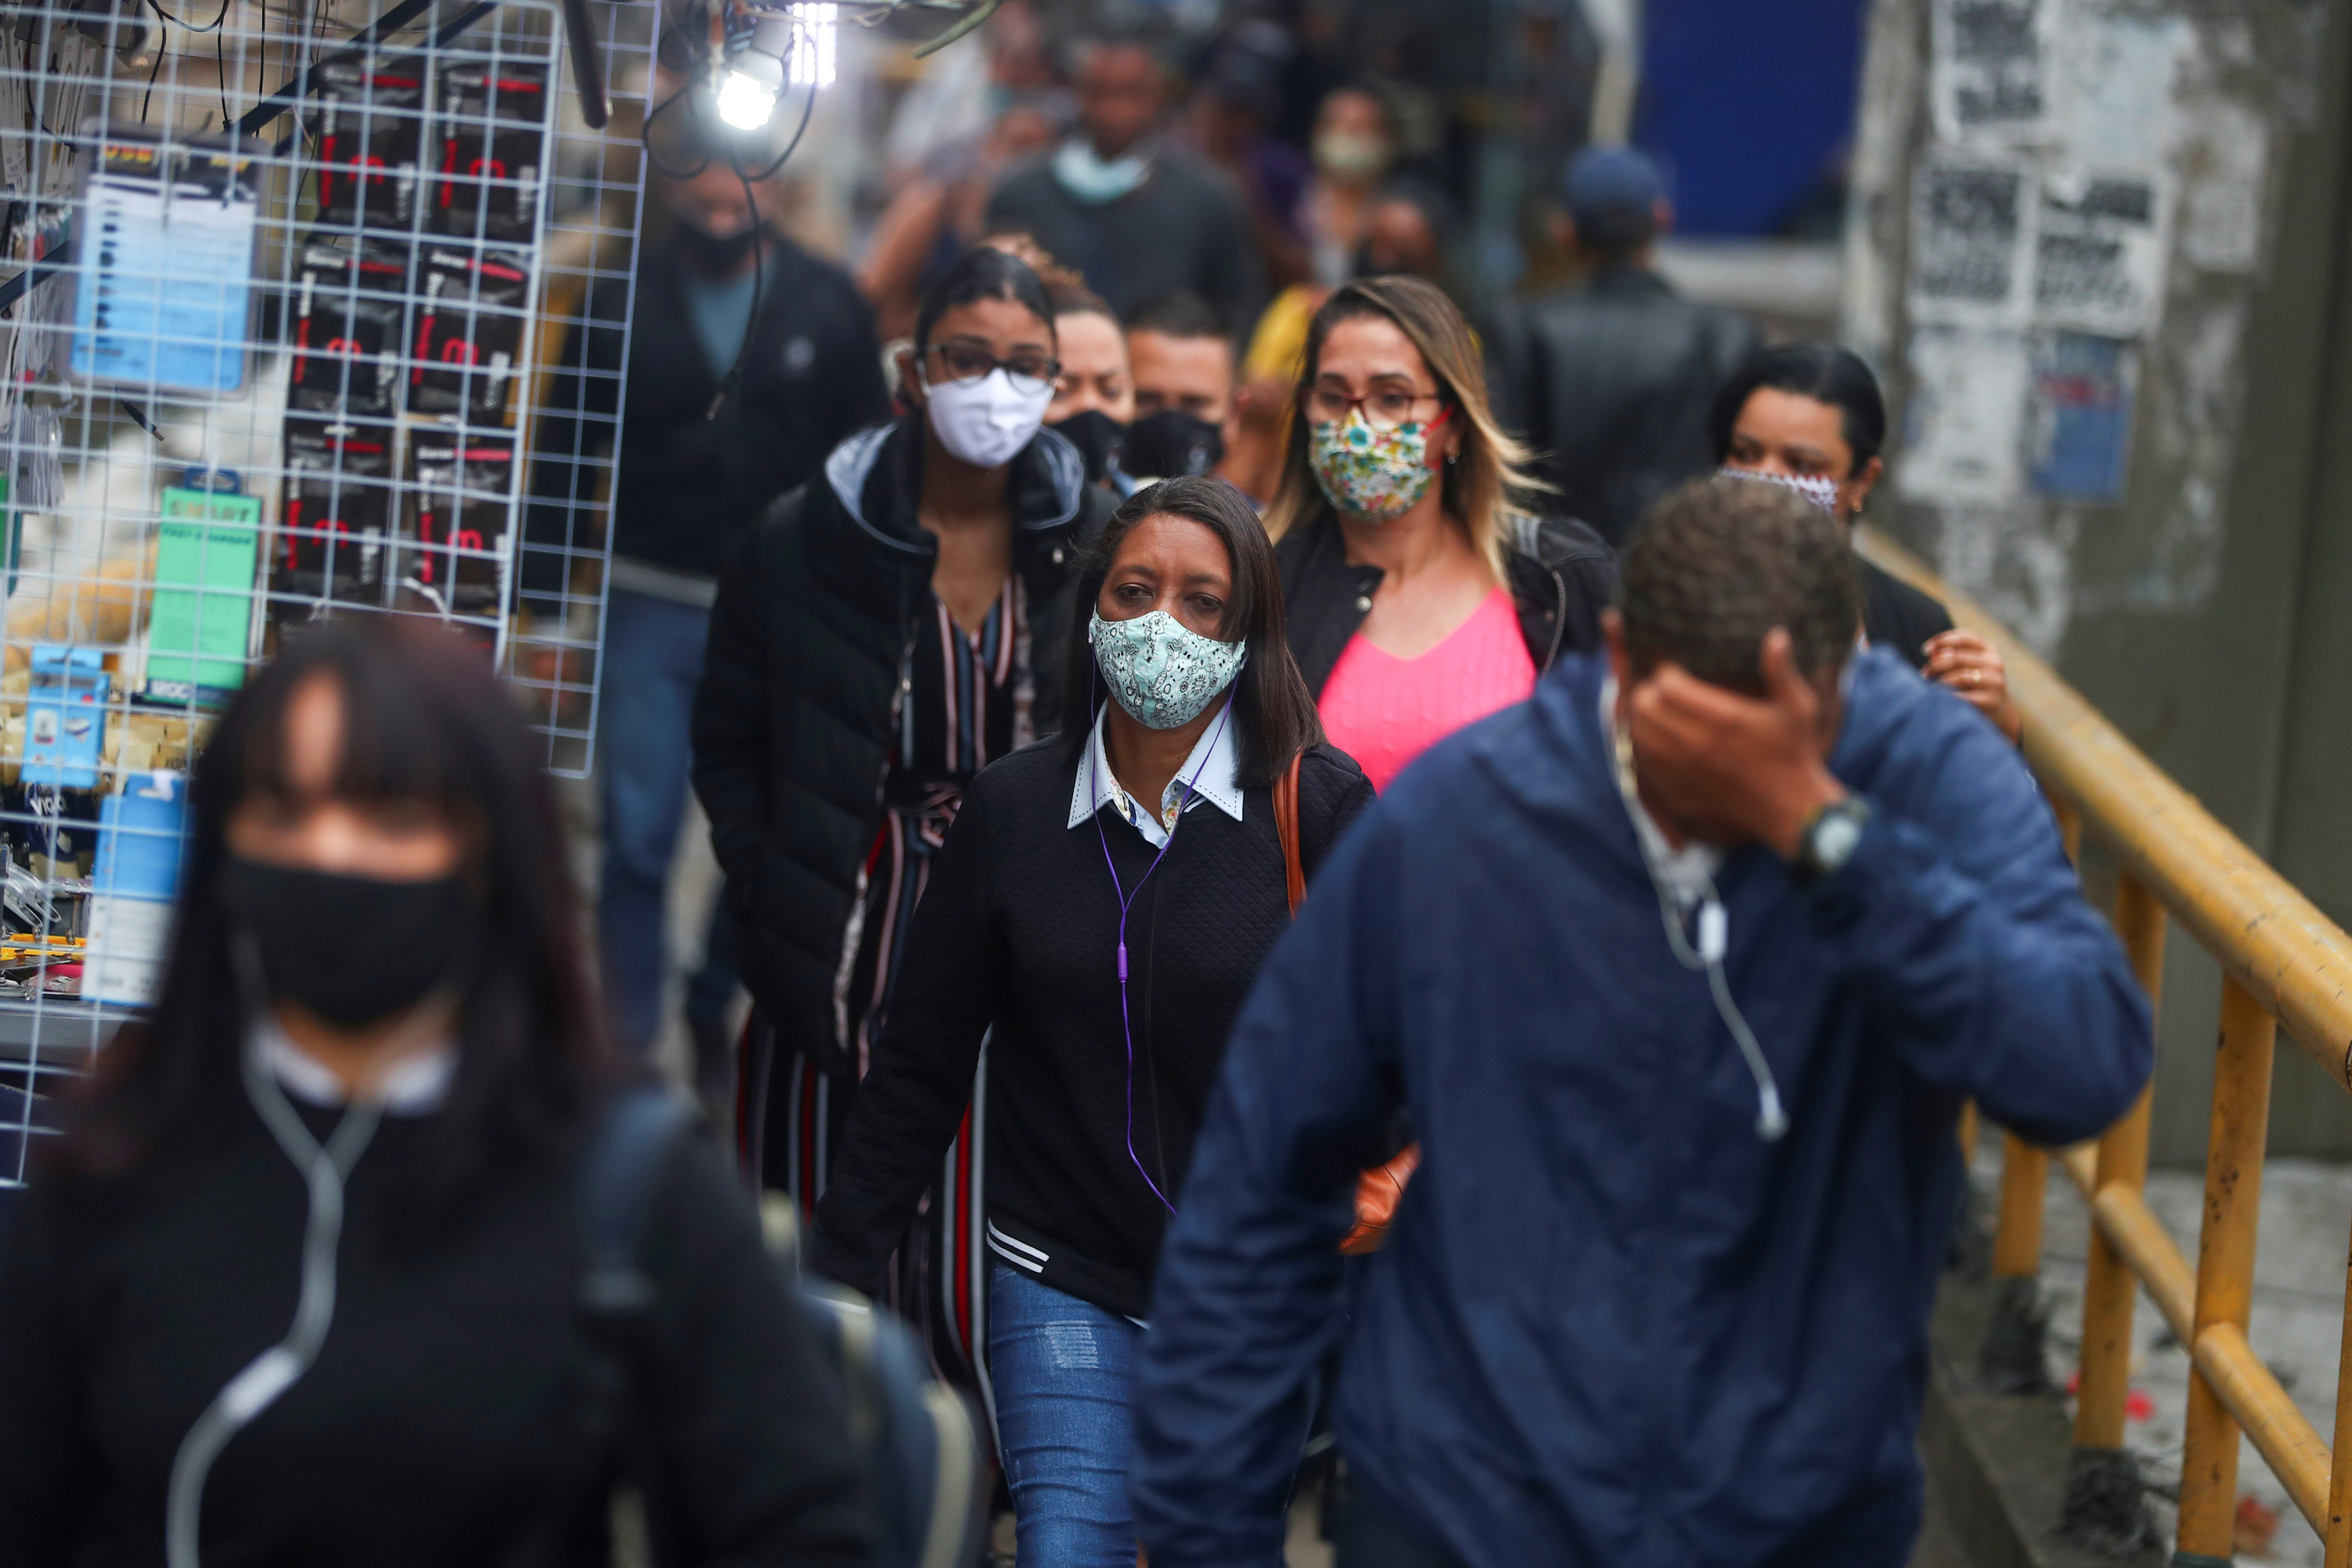 Commuters walk towards to a metro station, amid the coronavirus disease (COVID-19) outbreak, in Rio de Janeiro, Brazil July 16, 2020. REUTERS/Pilar Olivares - RC2FUH953X6X